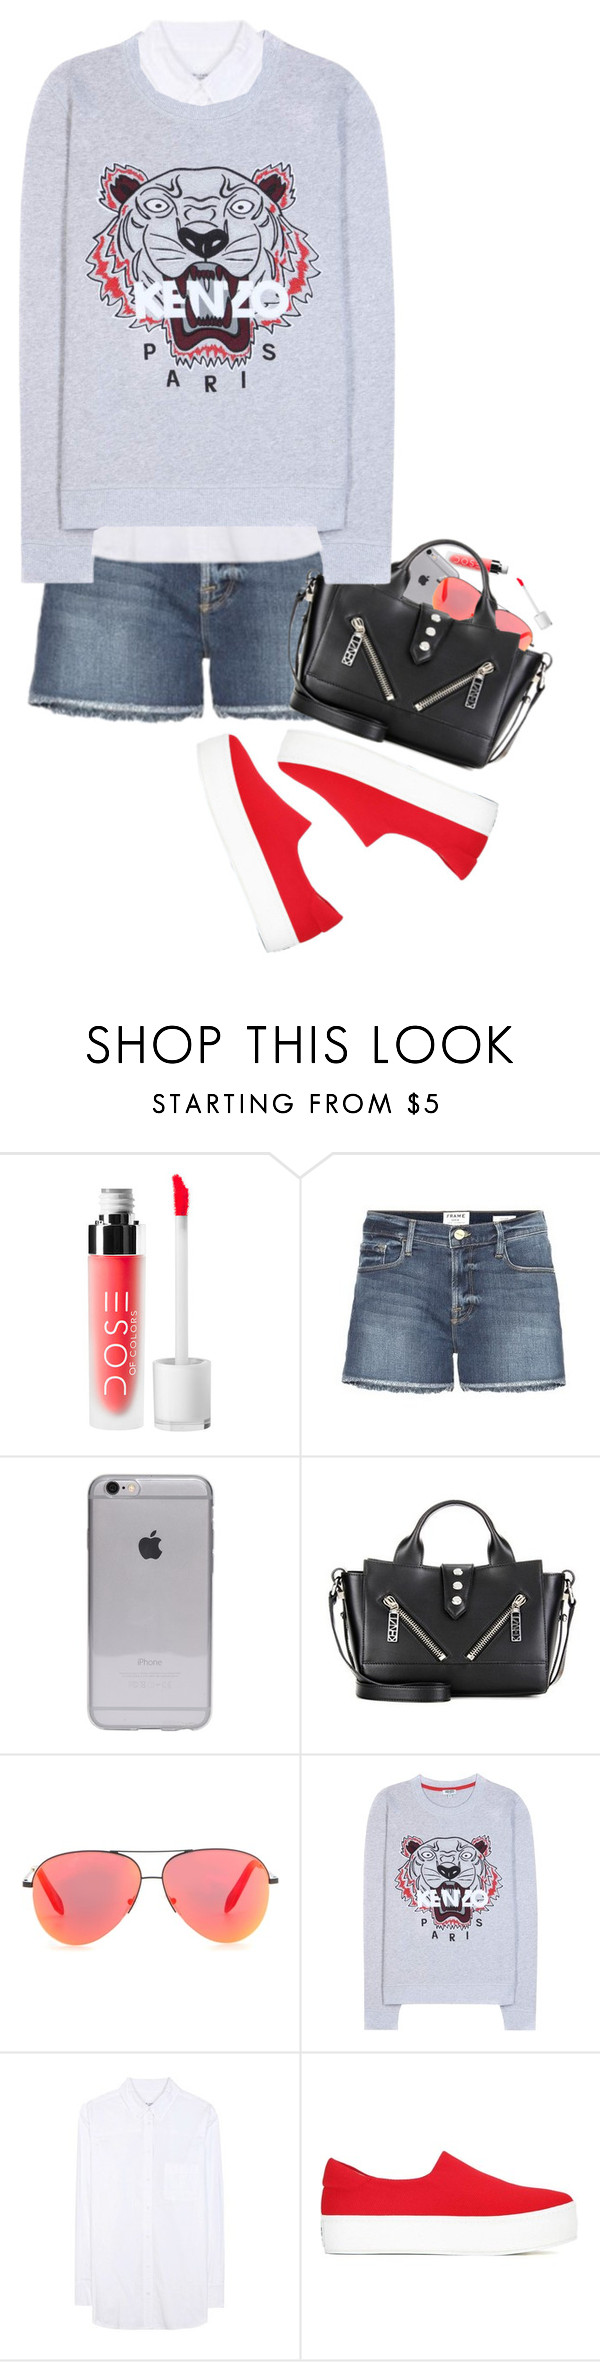 """Kenzo Casuals"" by hollowpoint-smile ❤ liked on Polyvore featuring Frame Denim, Kenzo, Victoria Beckham and Equipment"